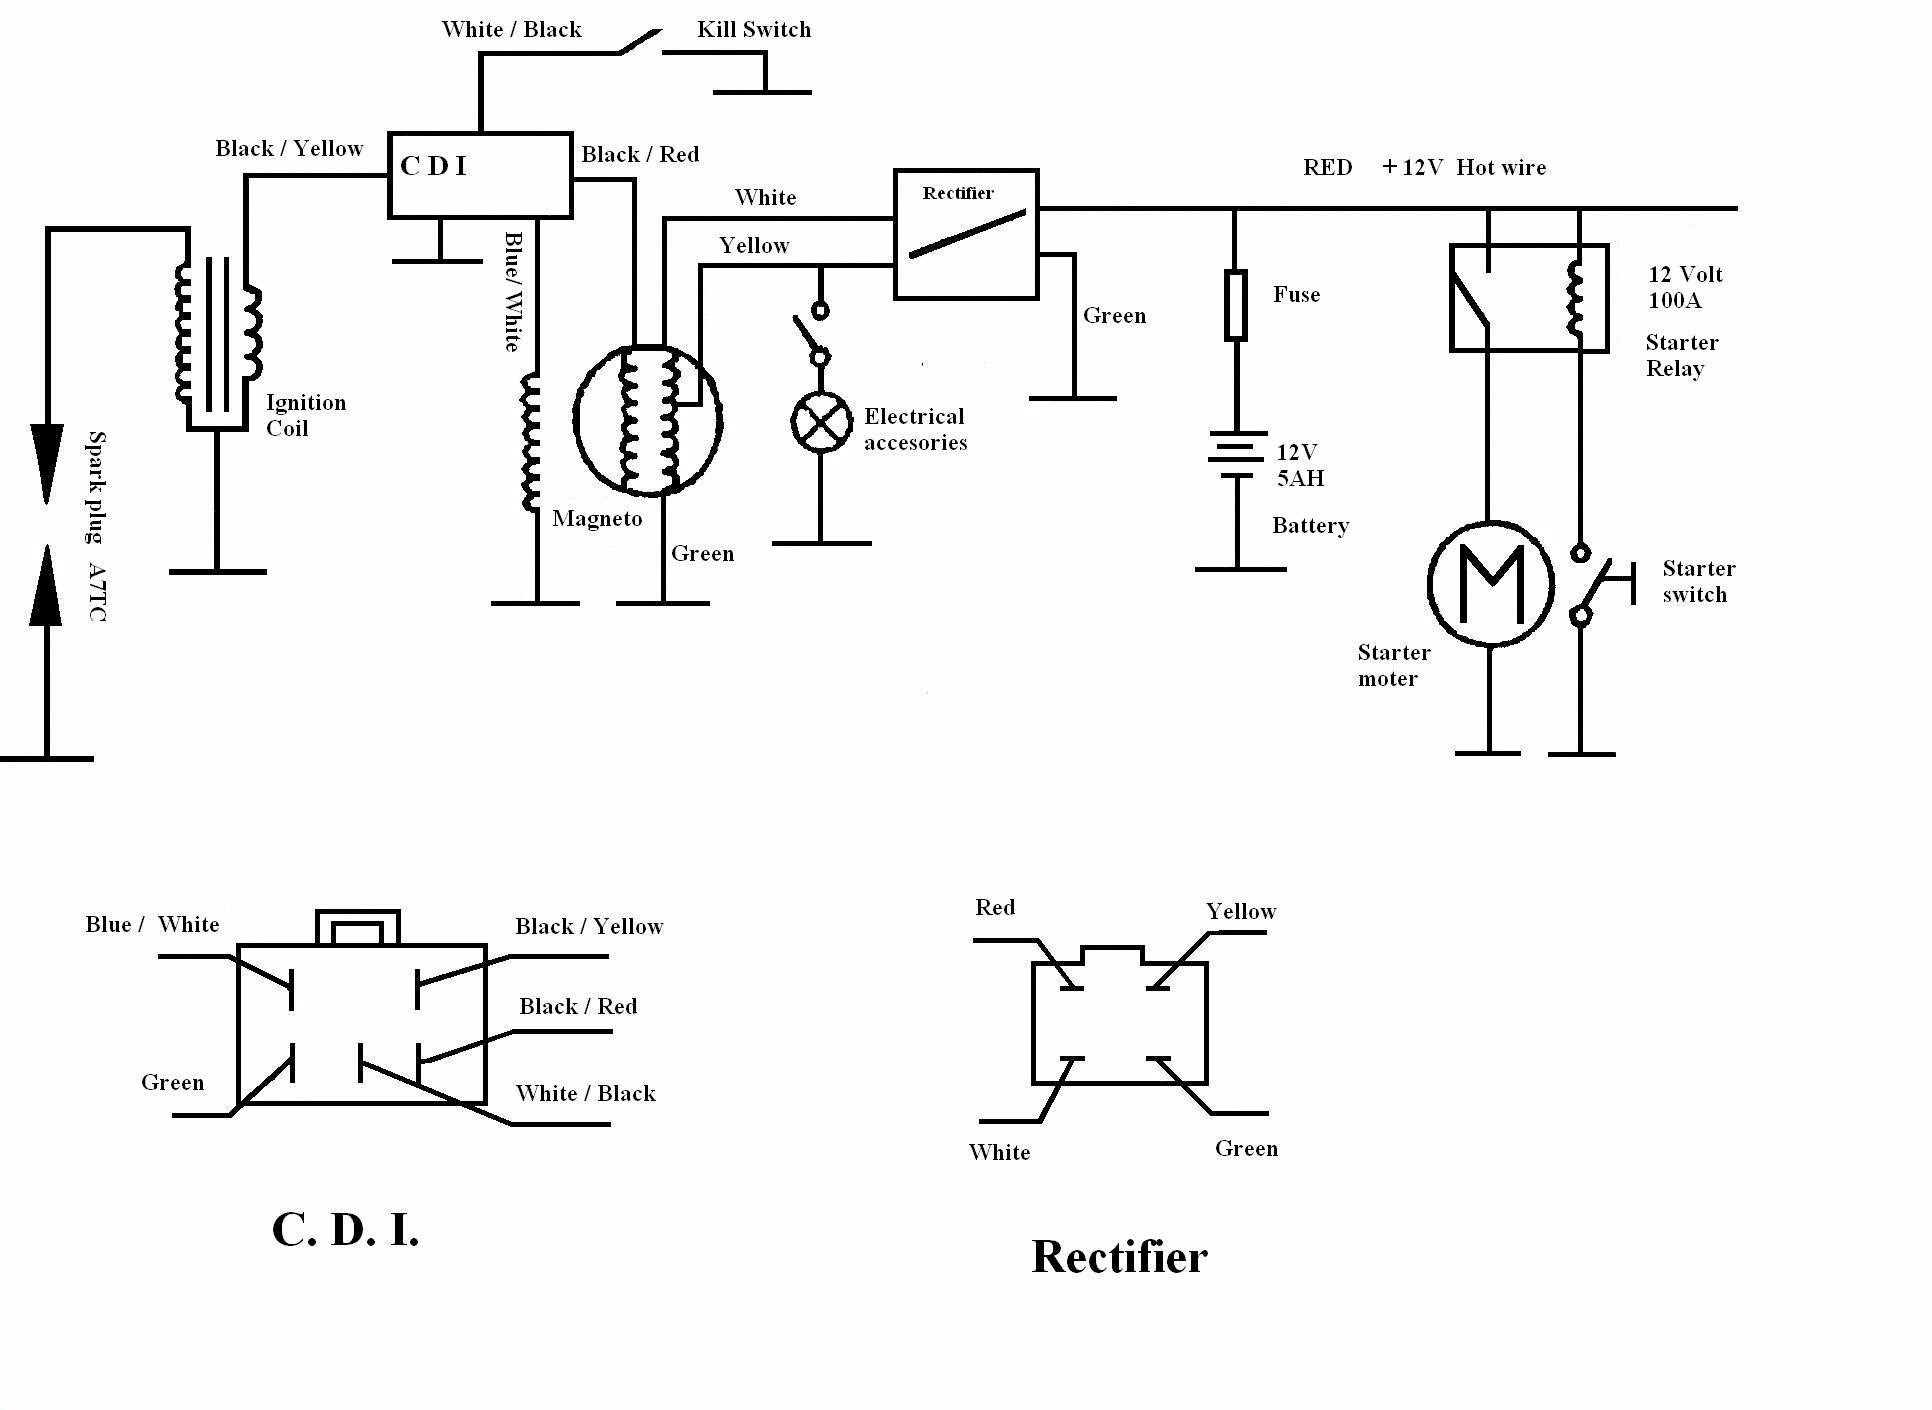 Wiring Diagram 125cc Engine Diagram 125cc Engine Wiring